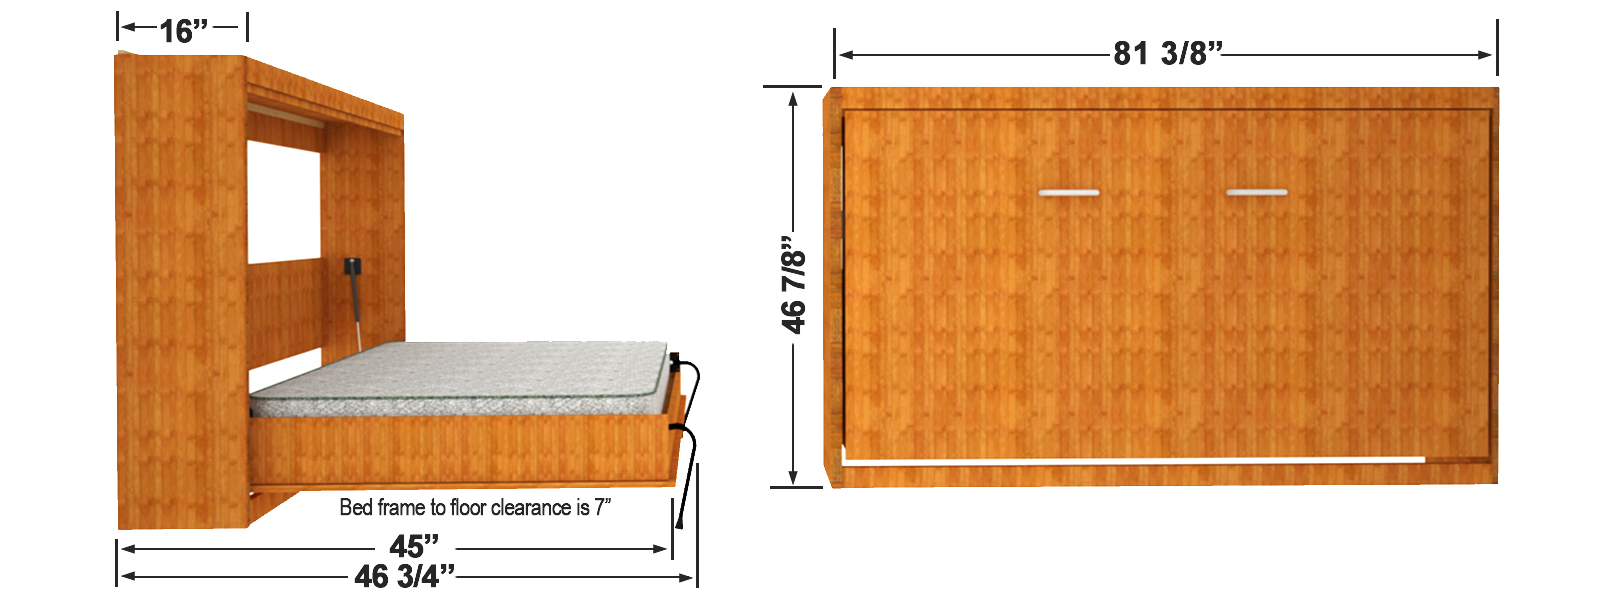 Standard Queen Size Bed Dimension Horizontal Easy Diy Murphy Dimensions Easy Diy Murphy Bed